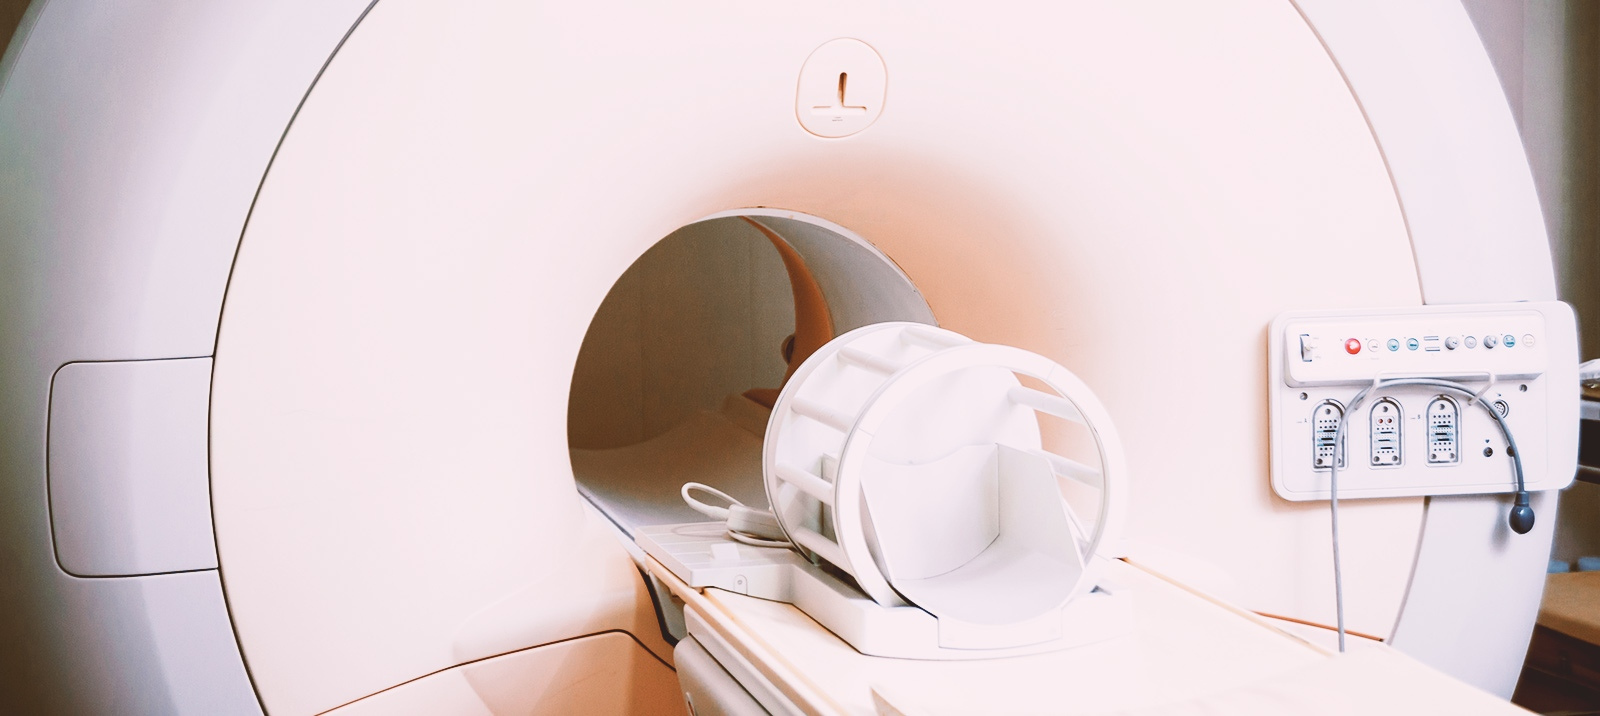 What to Know About Philips MRI Machines